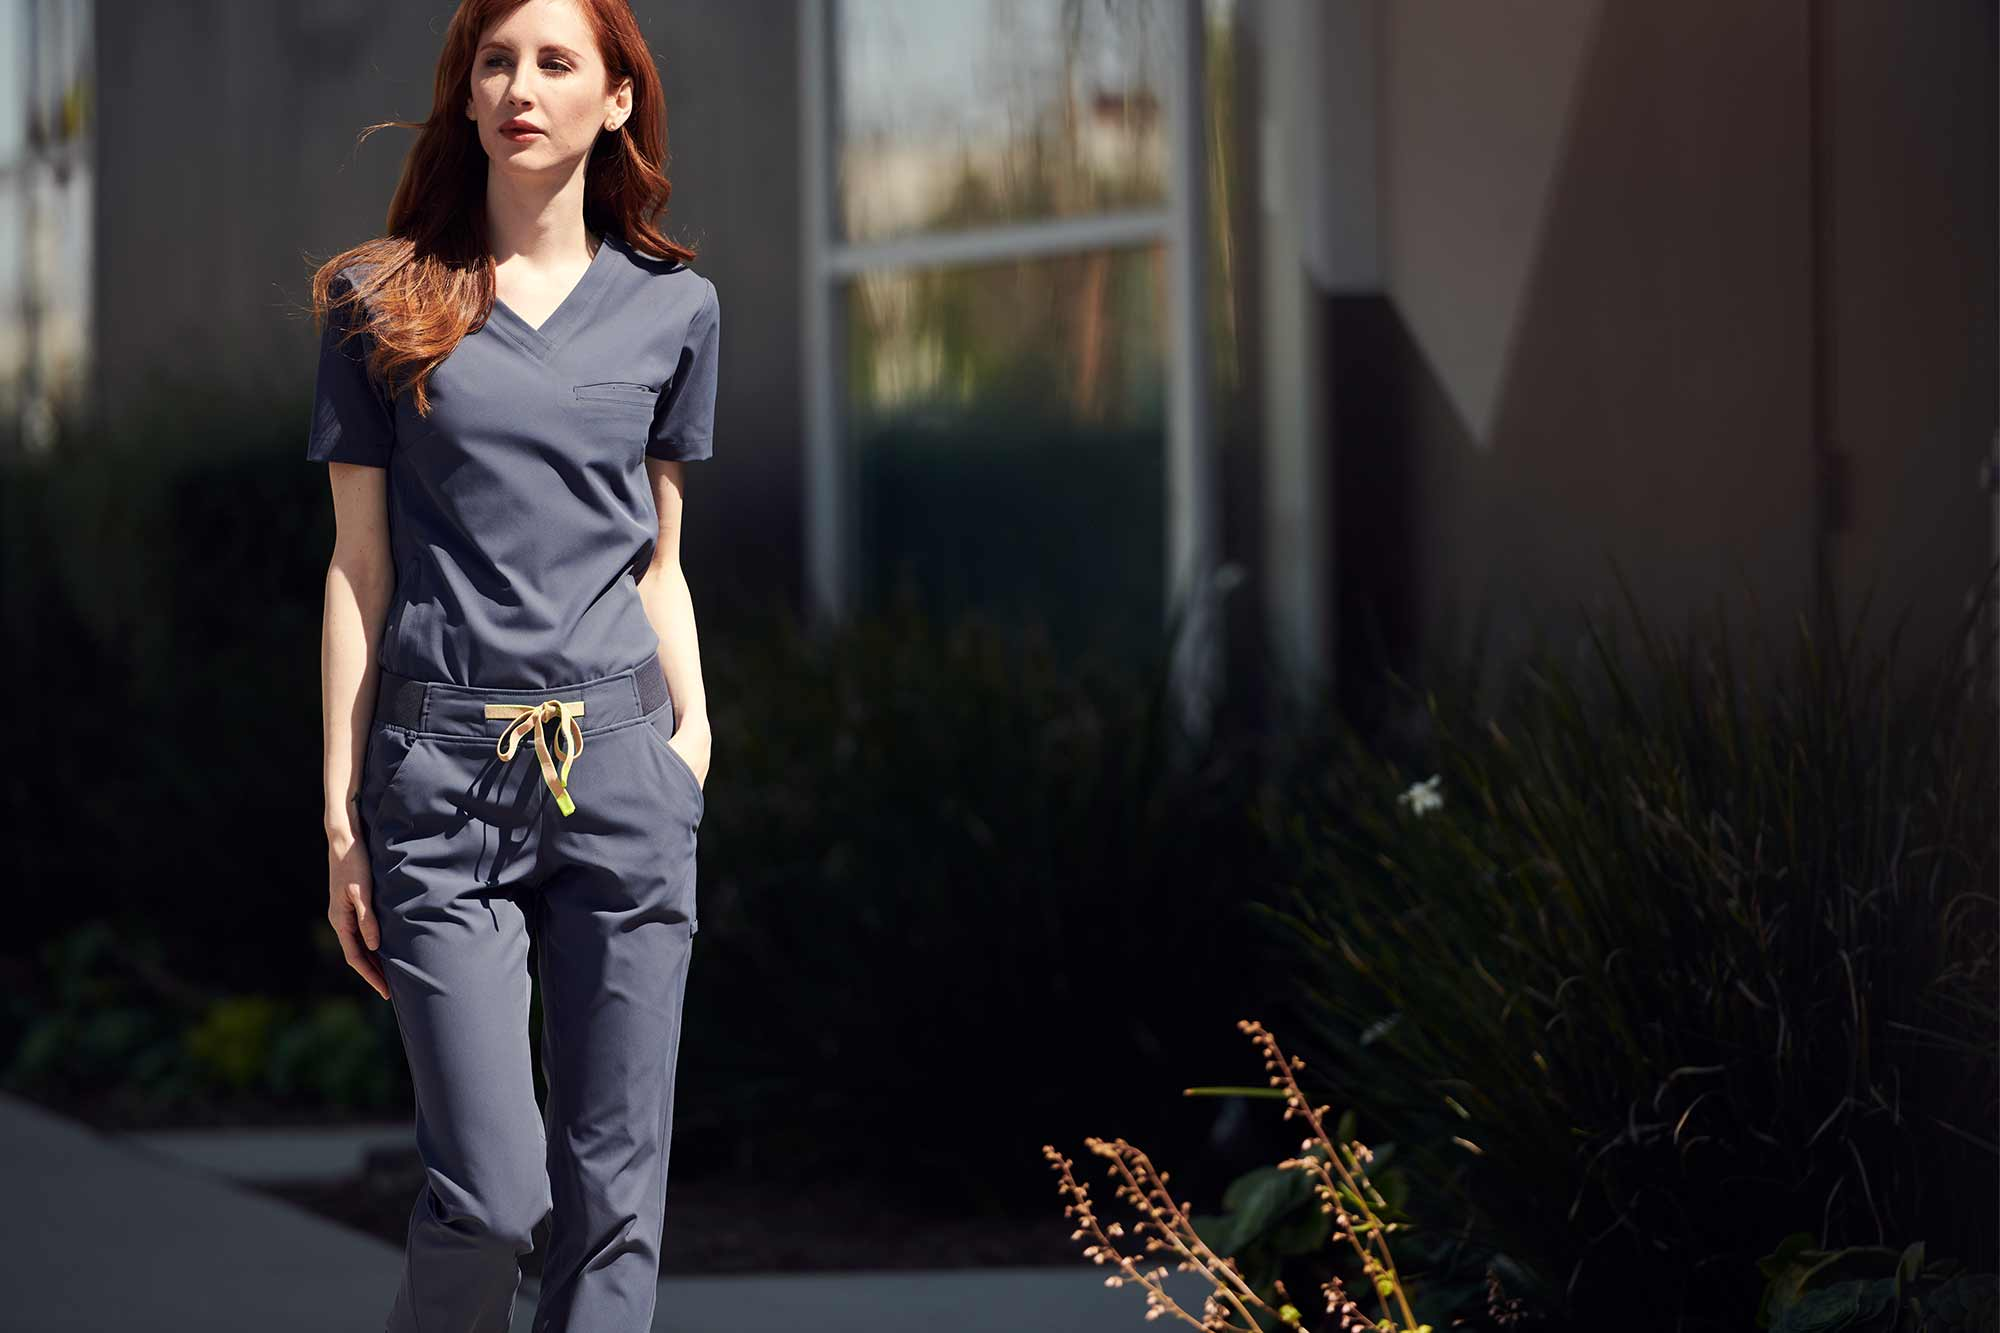 How to Look and Feel Your Best in Scrubs